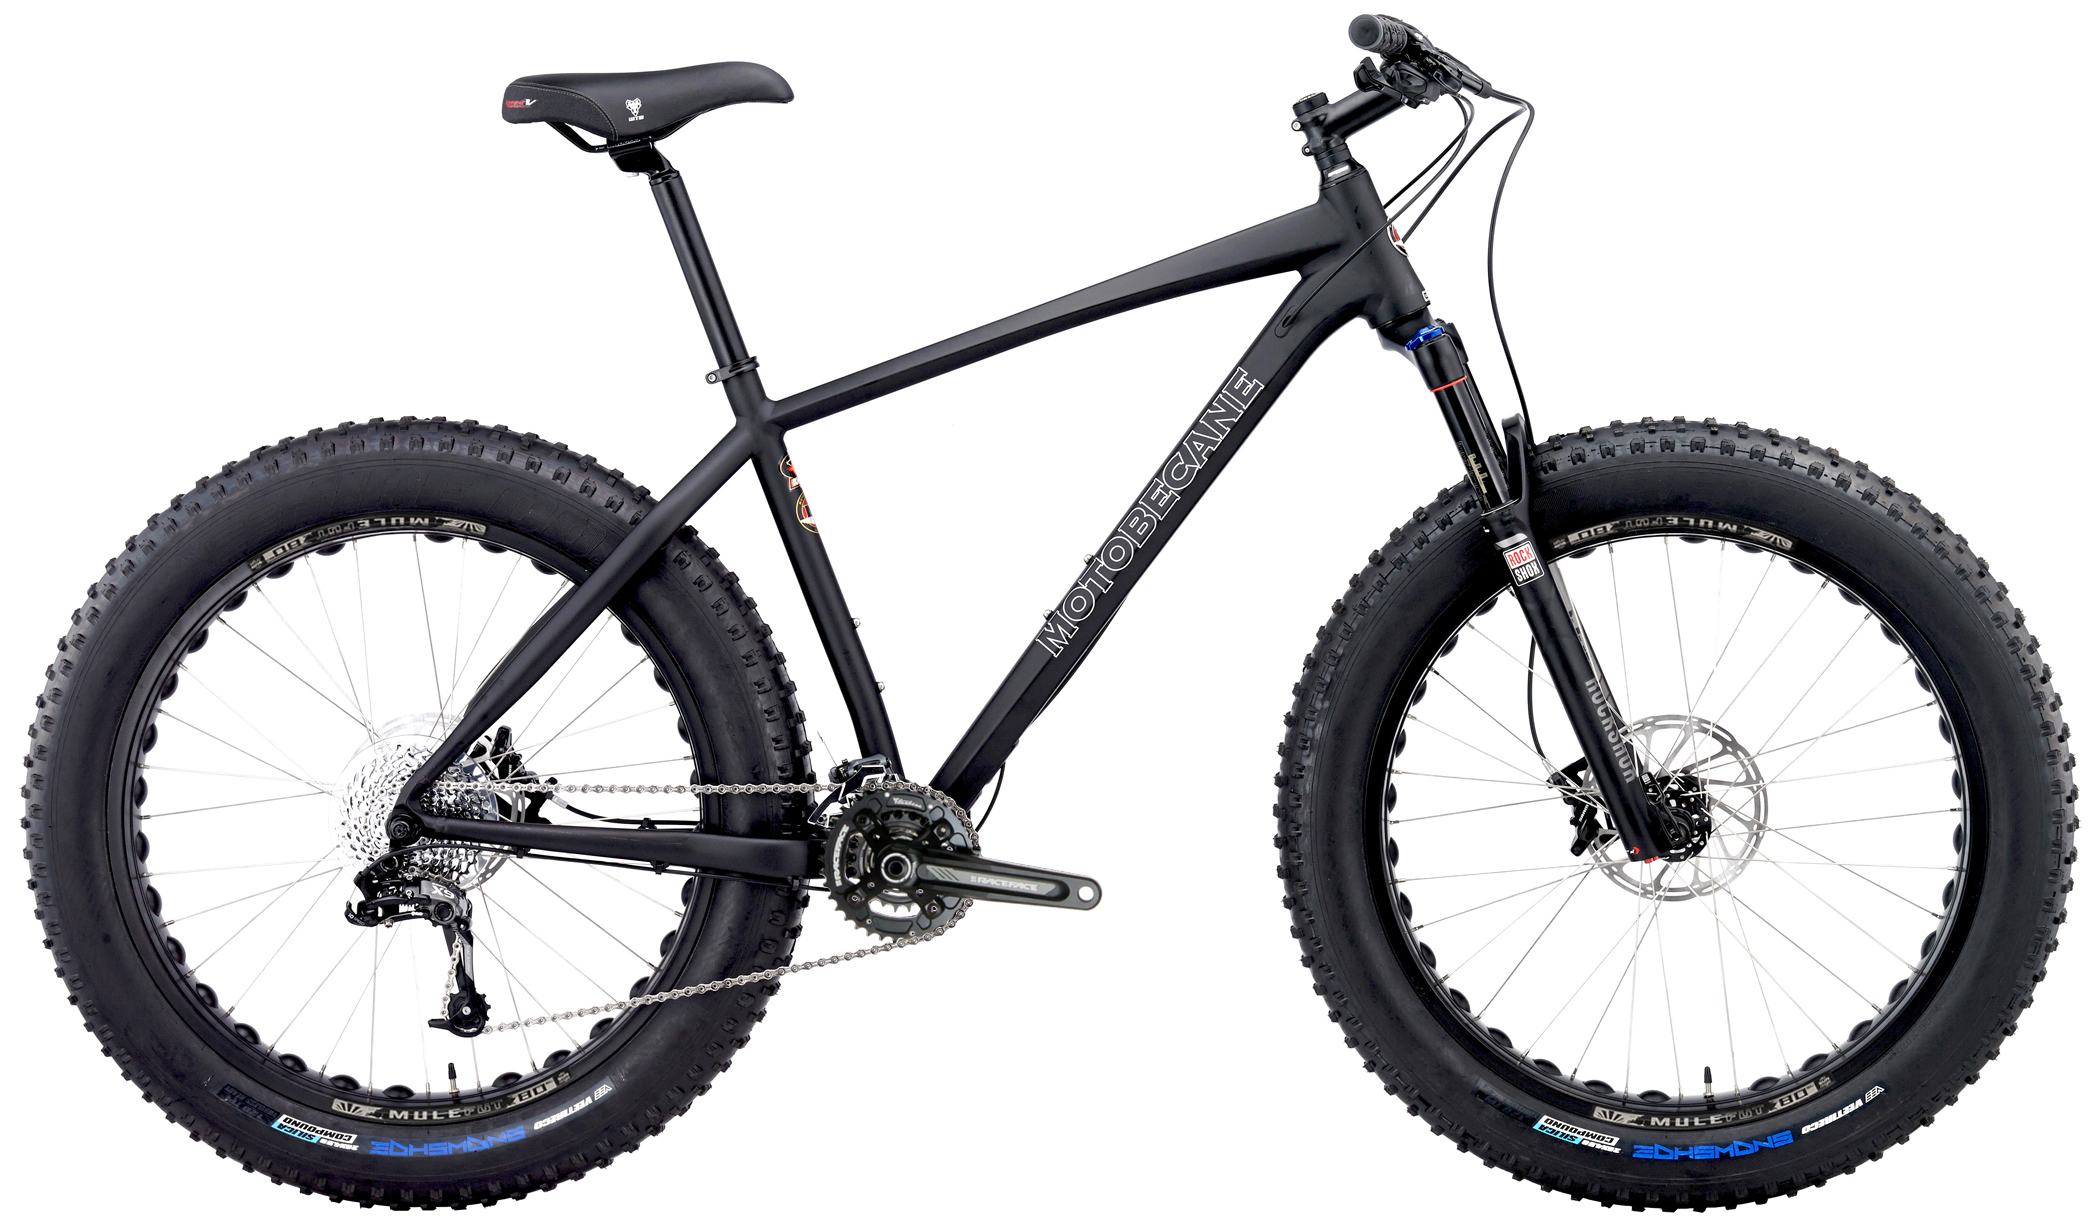 Mountain Bikes Motobecane Nighttrain Bullet Ltd 2016 Nighttrain